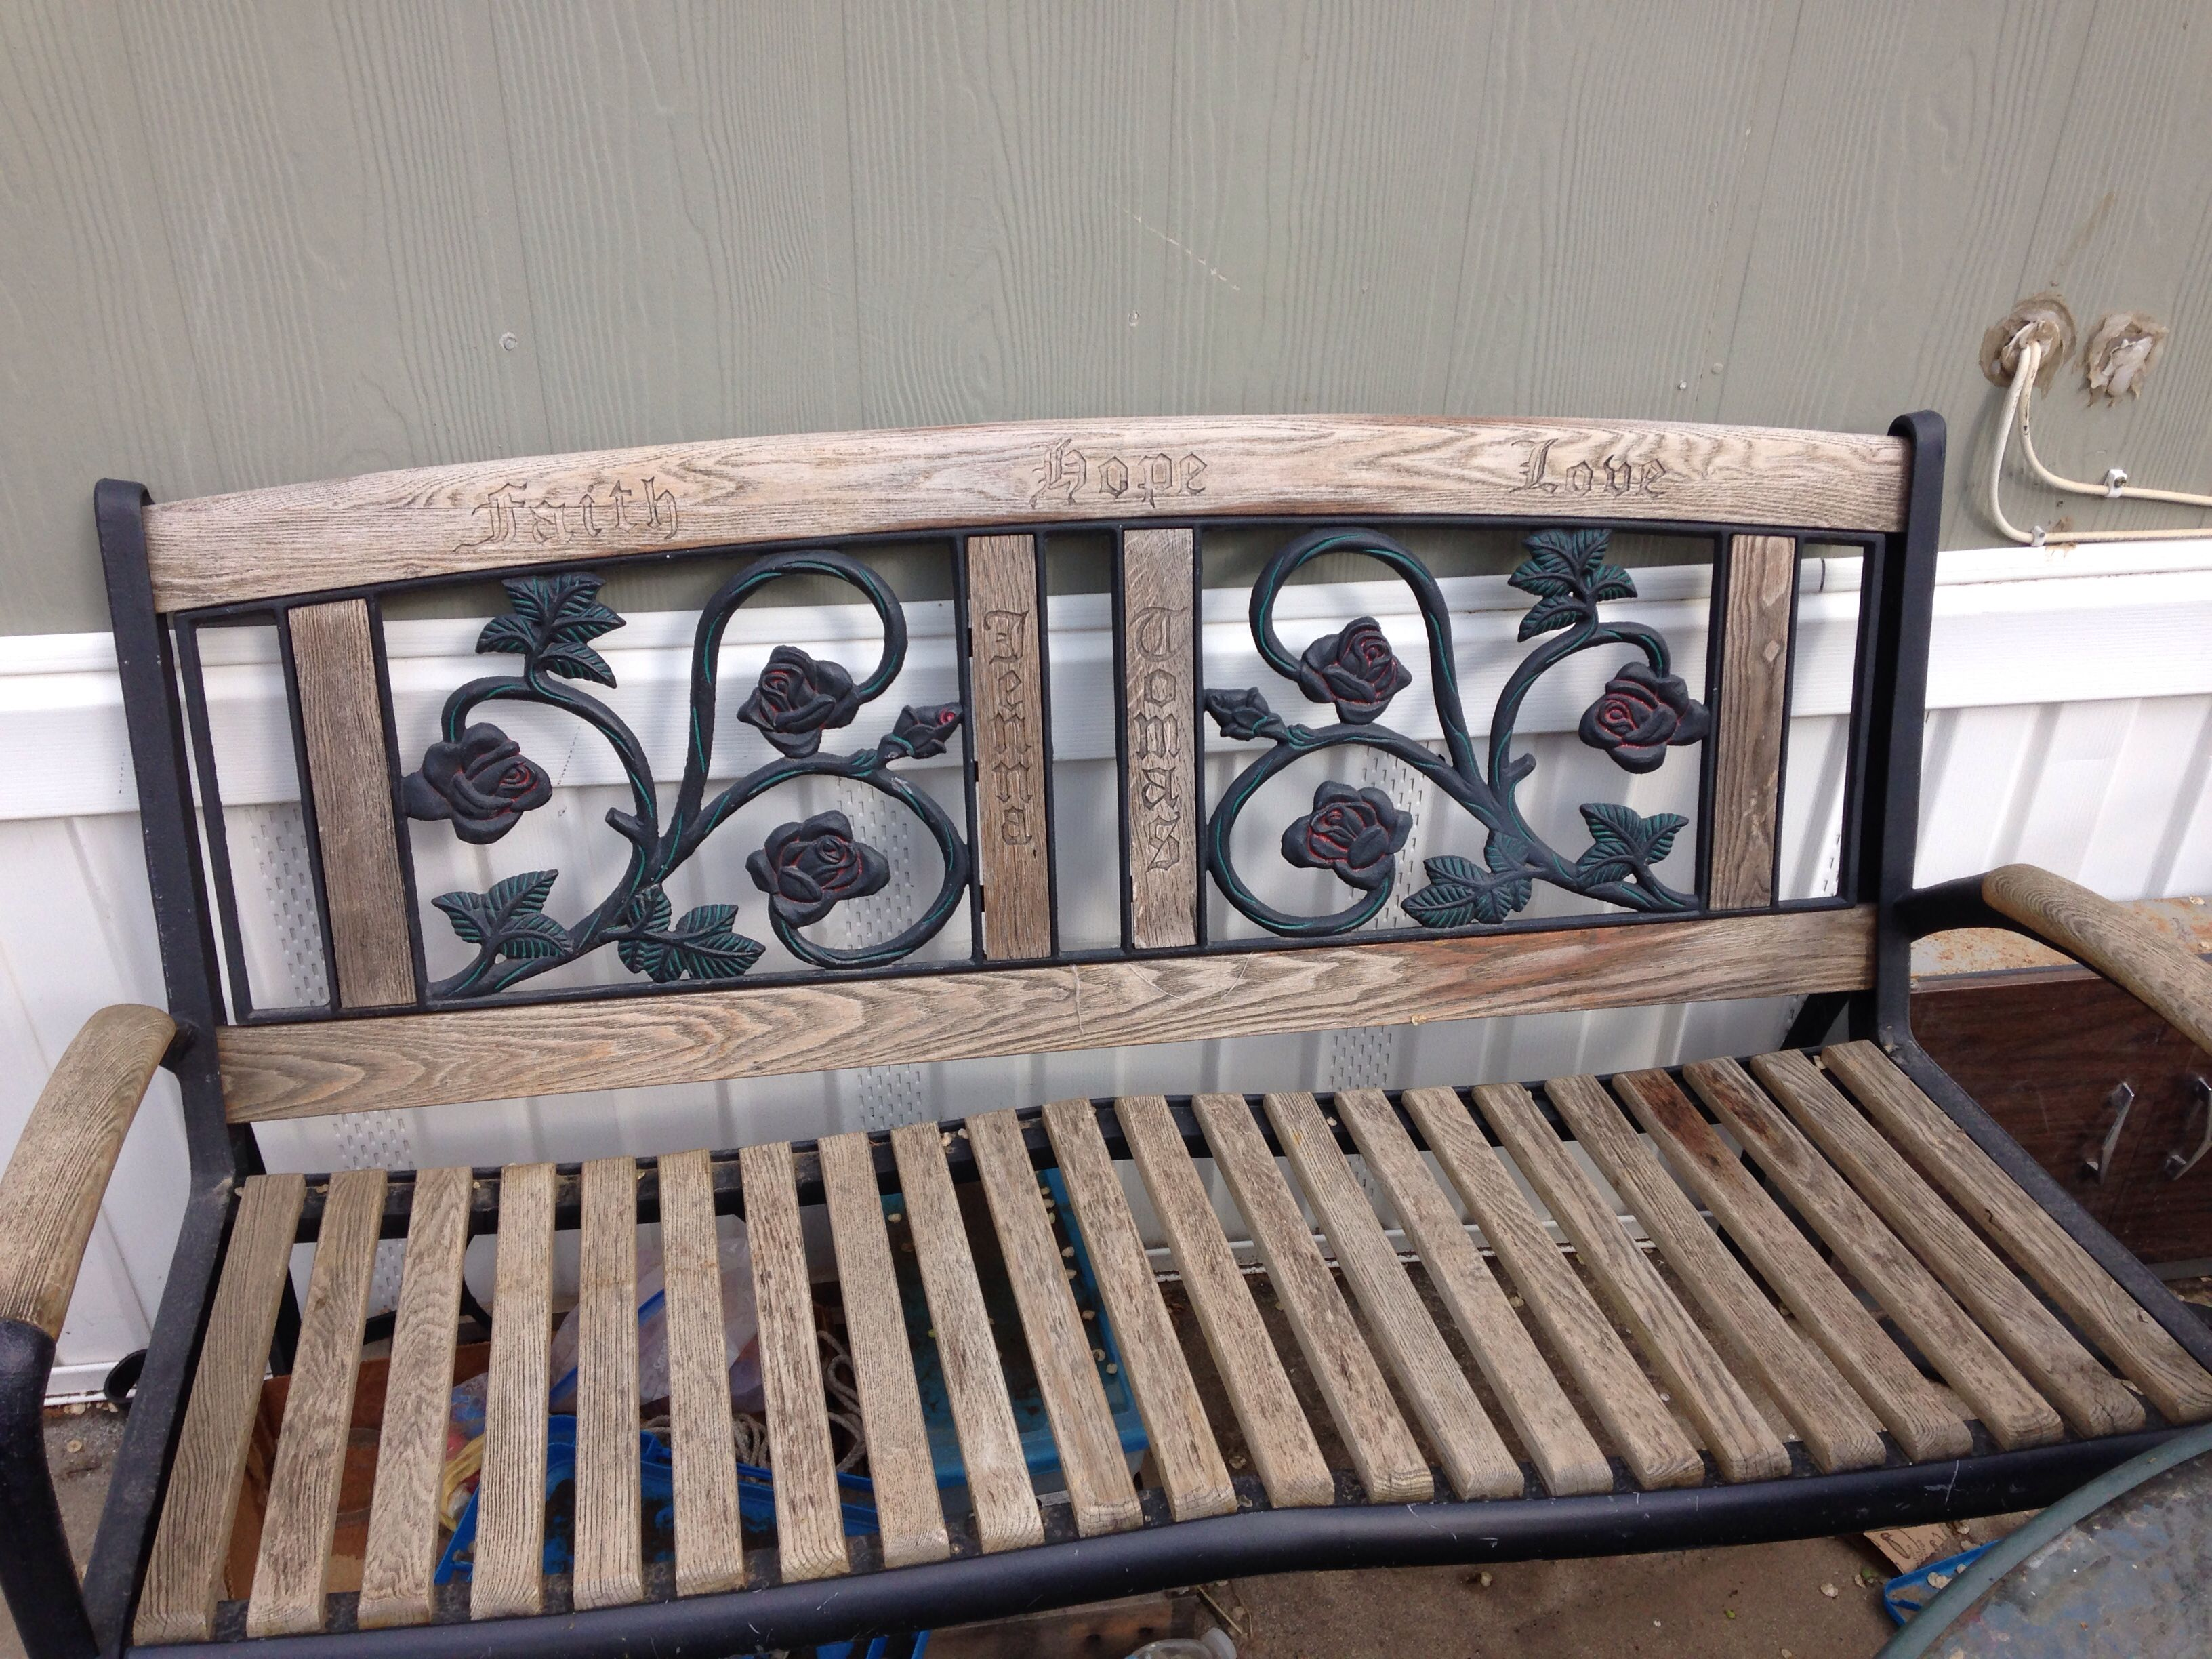 Our Bench Hubby Reclaimed This Broken Down Bench Restored It Hand Carved Our Names Before We Were Married Now All We Nee Home Decor Wood Recycled Materials